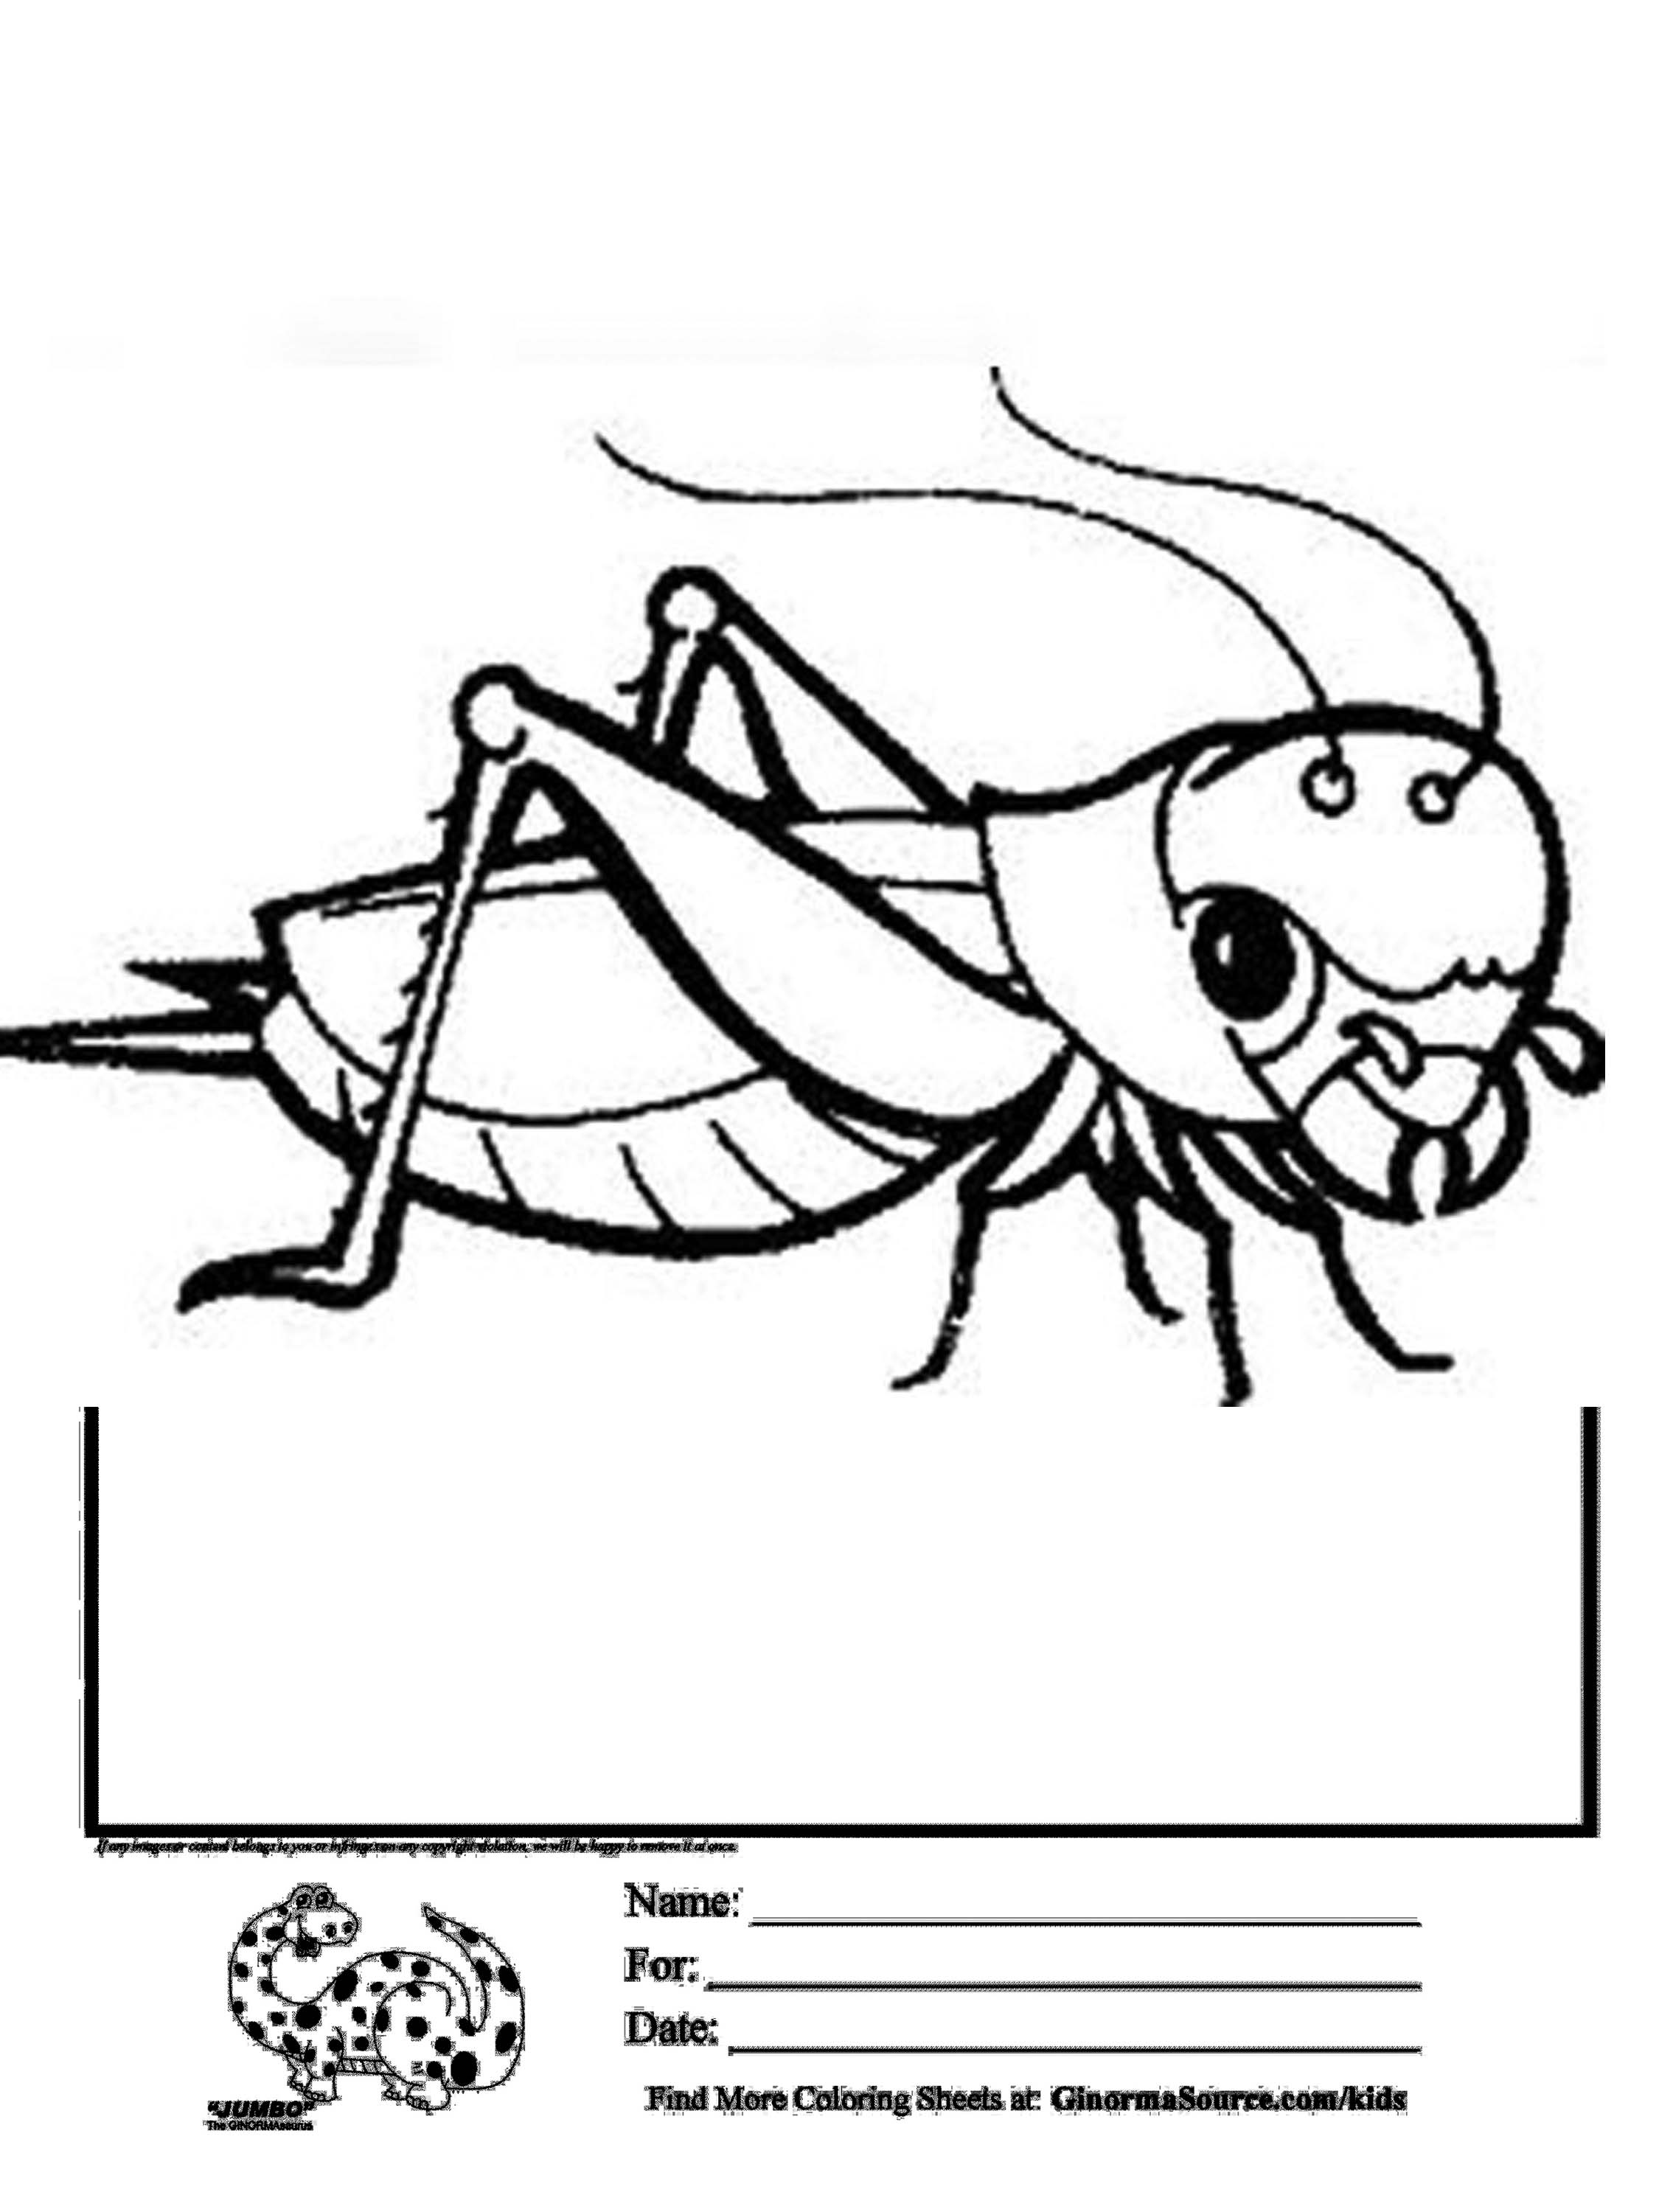 grasshopper pictures for kids grasshopper drawing for kids at getdrawings free download for grasshopper pictures kids